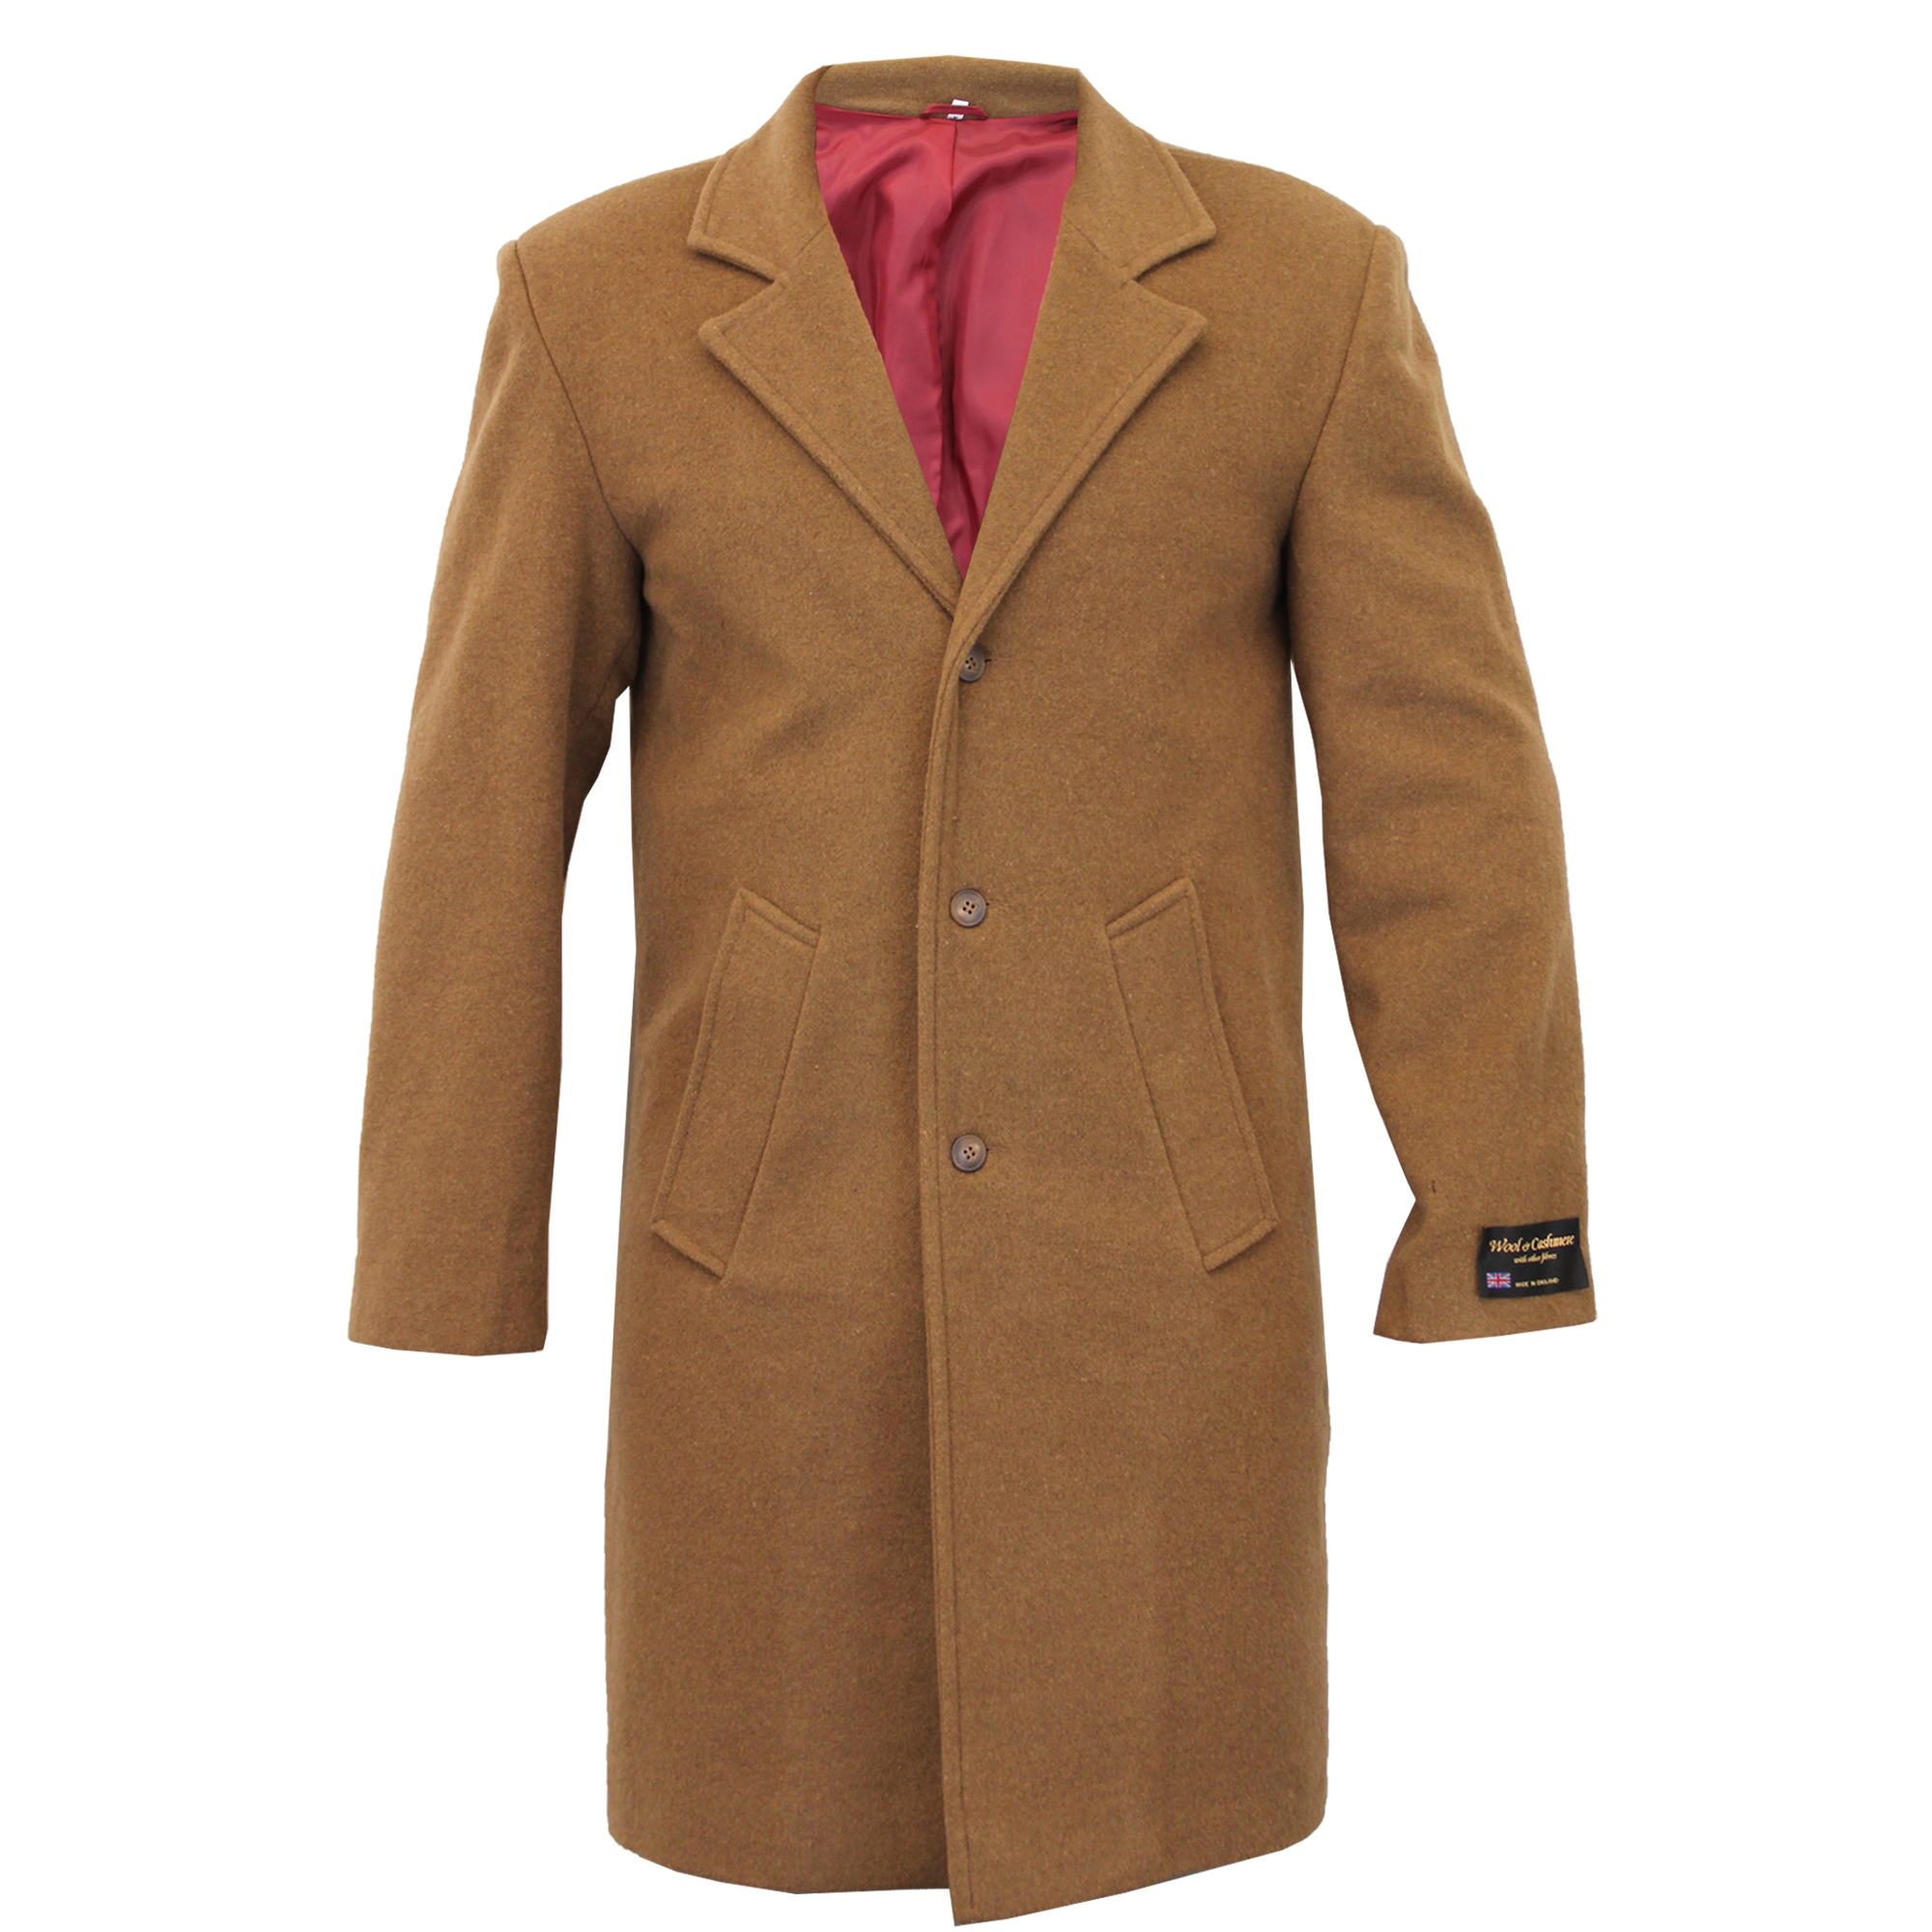 Mens Wool Cashmere Coat Jacket Outerwear Trench Overcoat ...